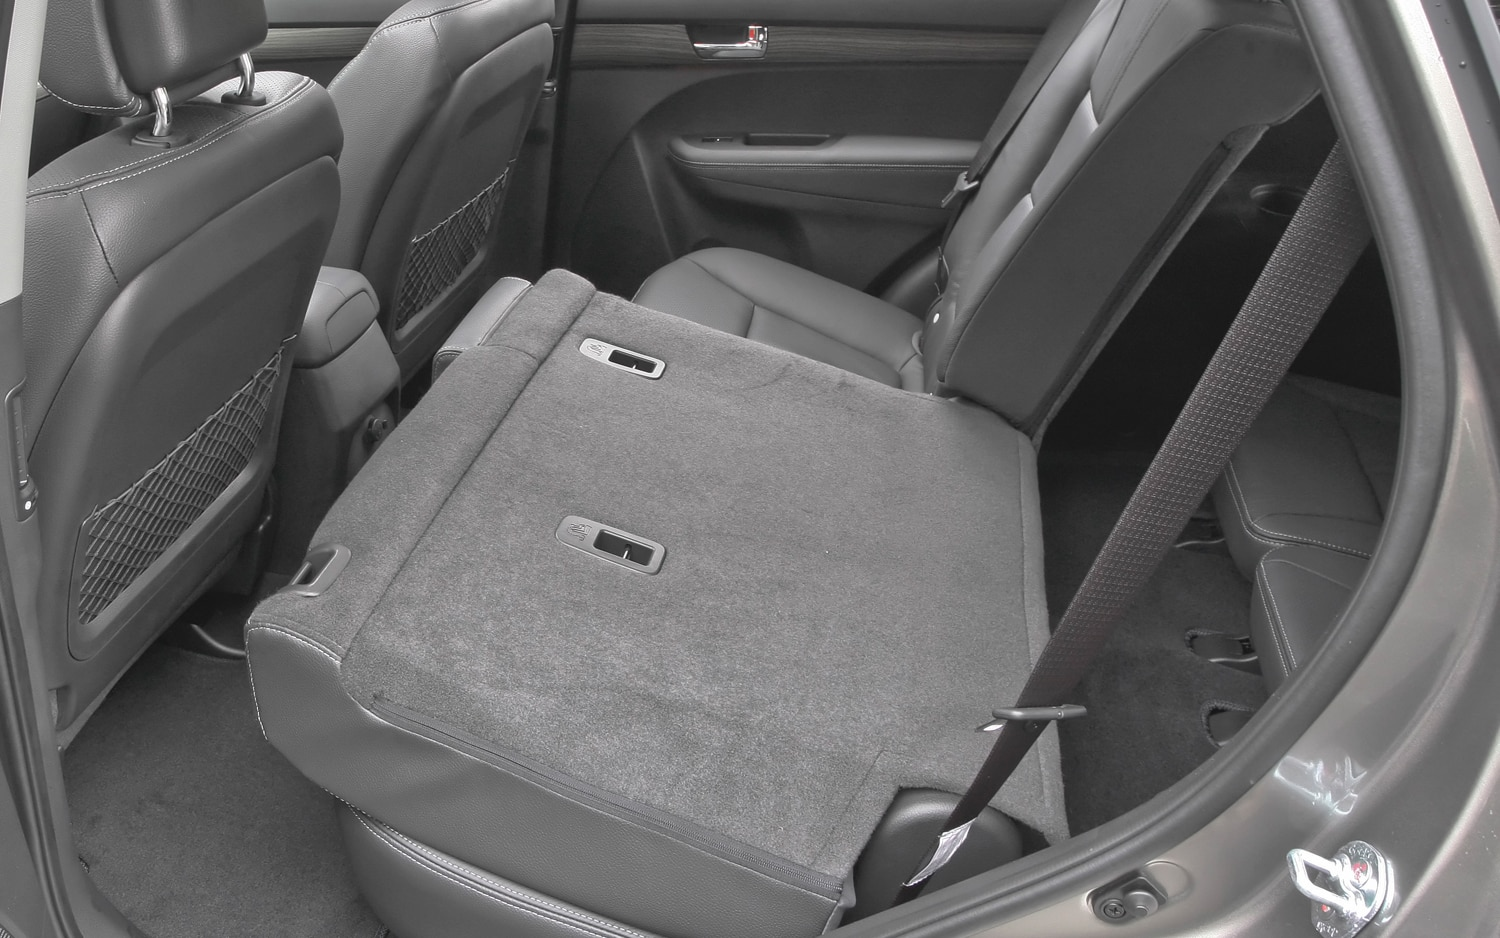 2012 Kia Sorento Rear Seats Folded 2